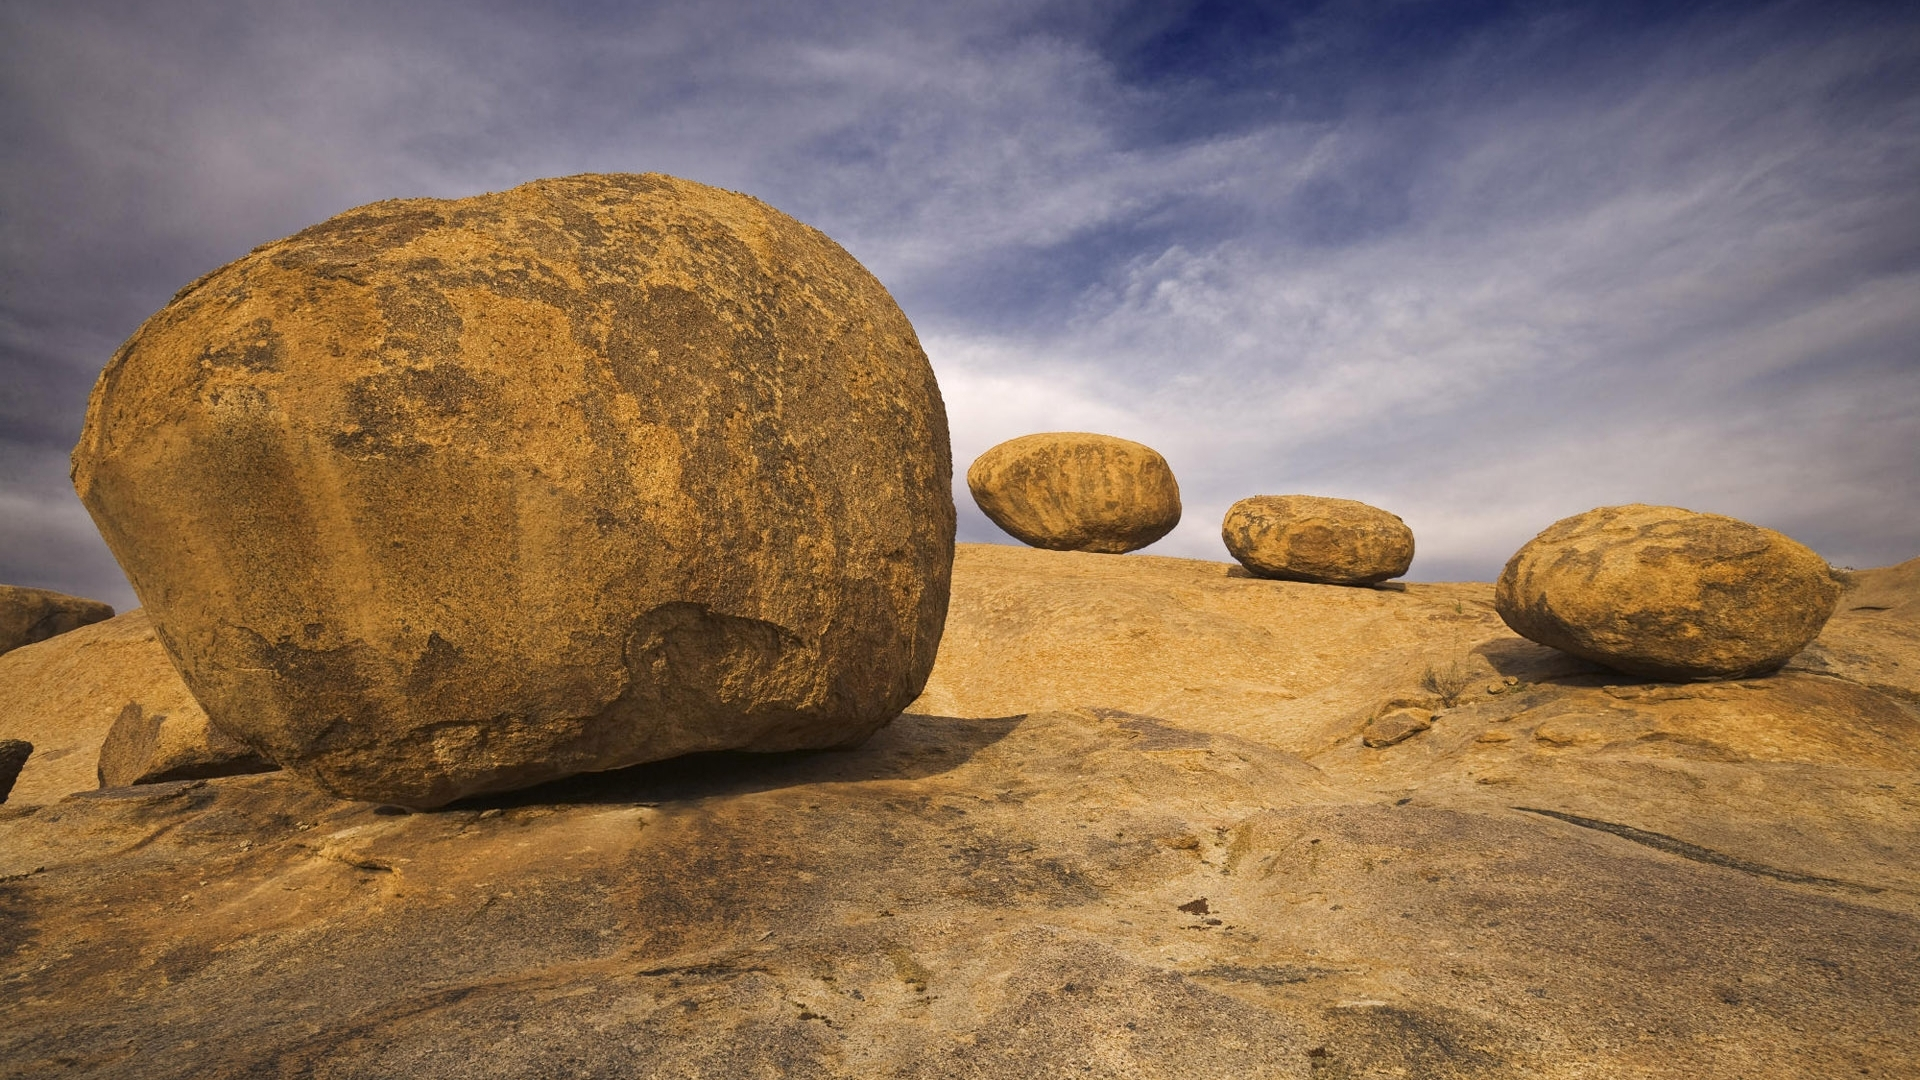 Cool Boulders Wallpaper